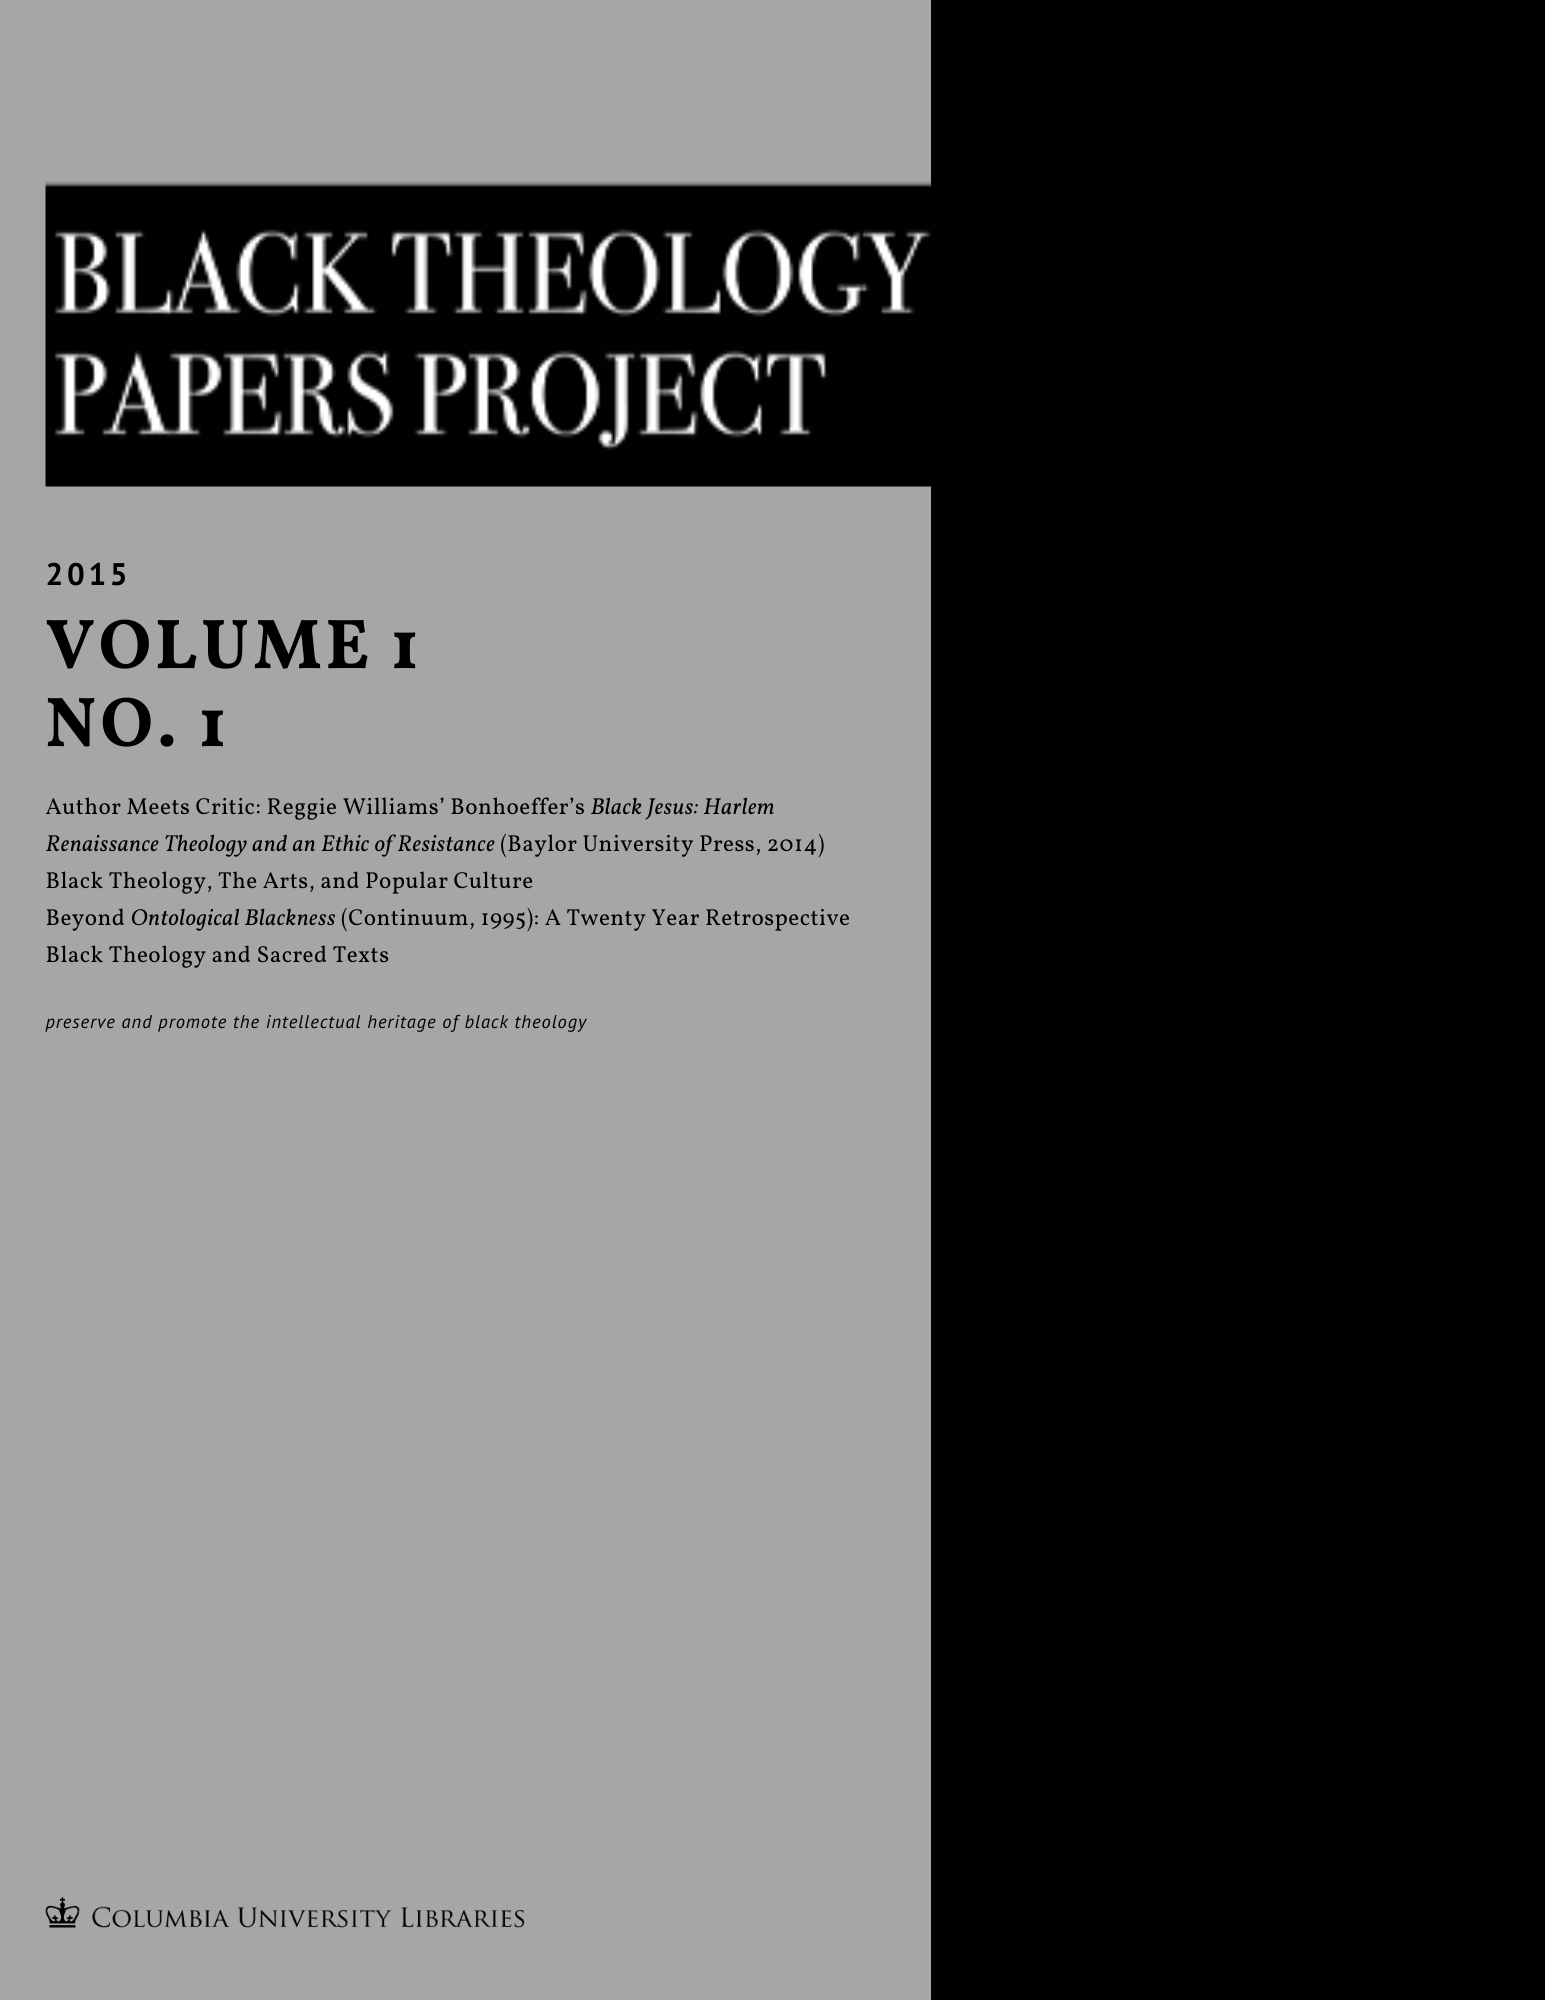 Black Theology Papers Project Vol. 1